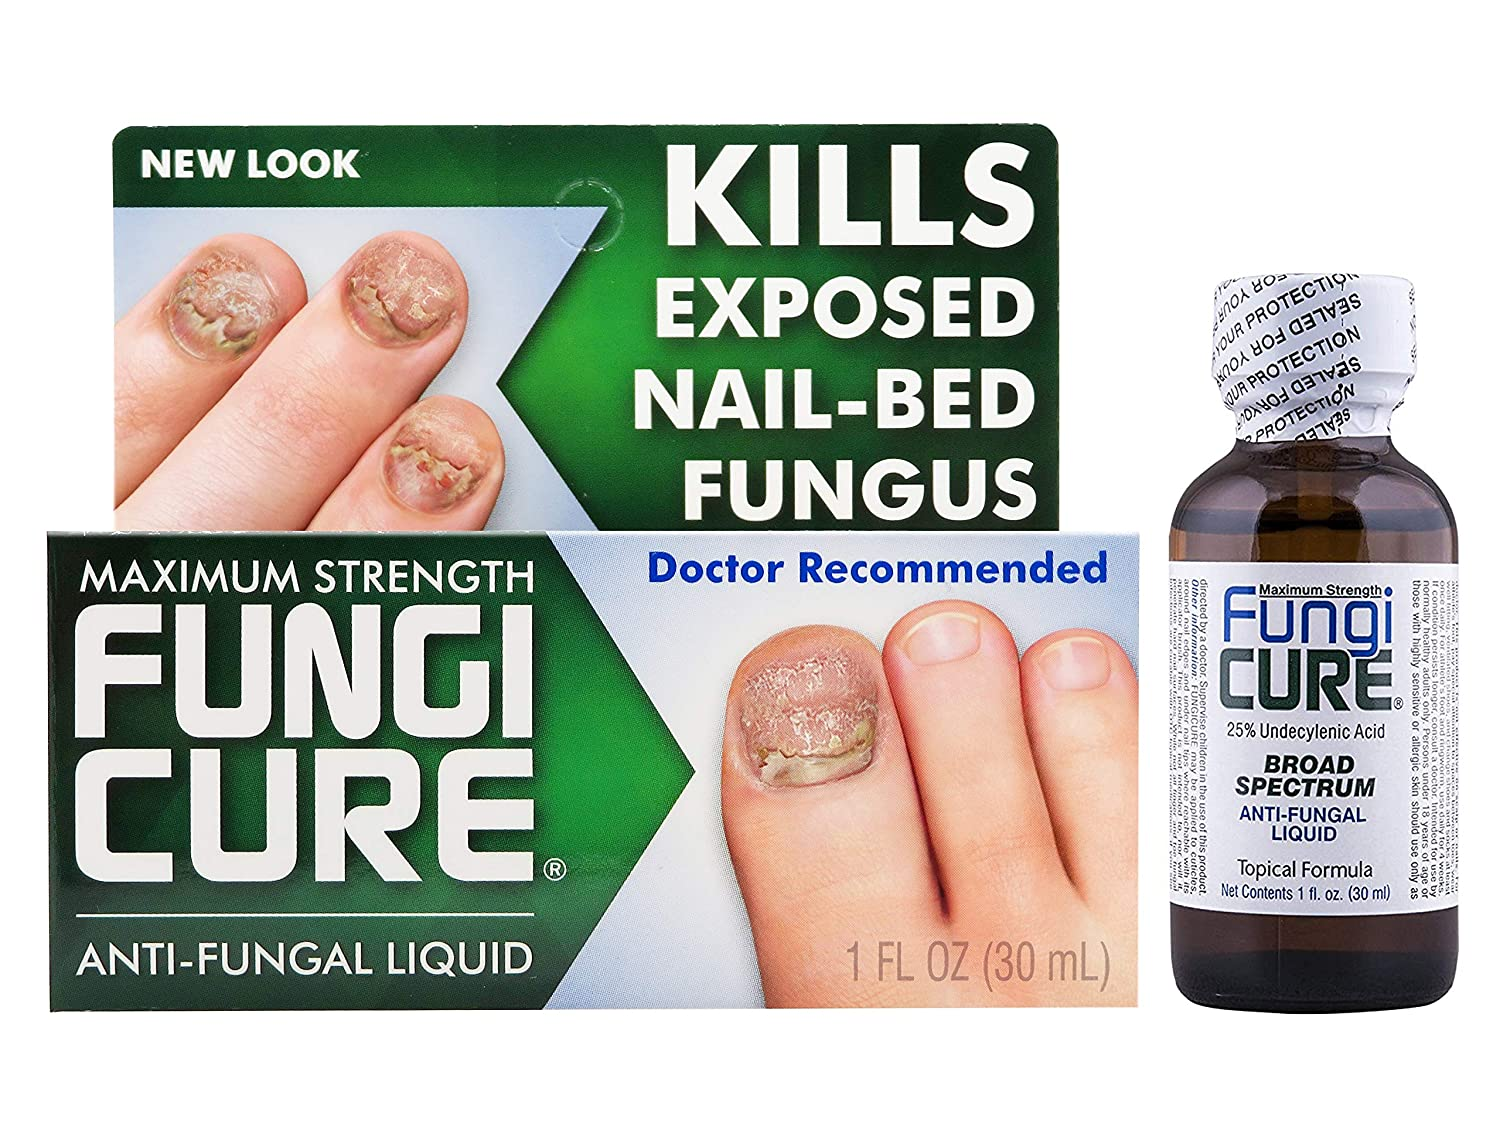 Antifungal preparations for nails